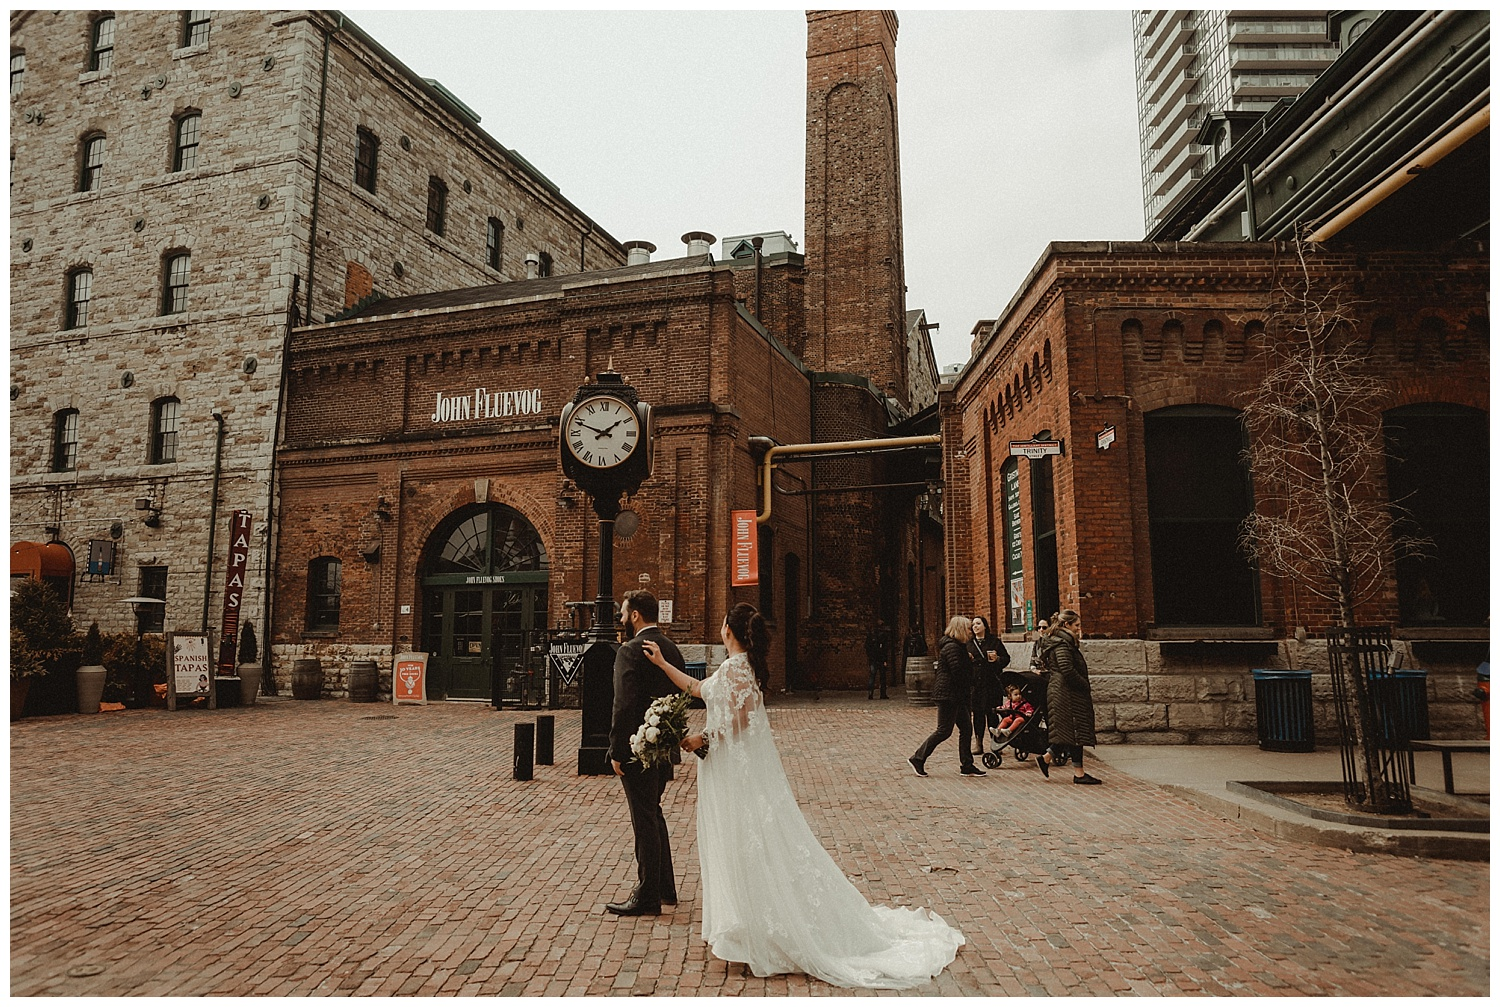 Katie Marie Photography | Archeo Wedding Arta Gallery Wedding | Distillery District Wedding | Toronto Wedding Photographer | Hamilton Toronto Ontario Wedding Photographer |_0004.jpg